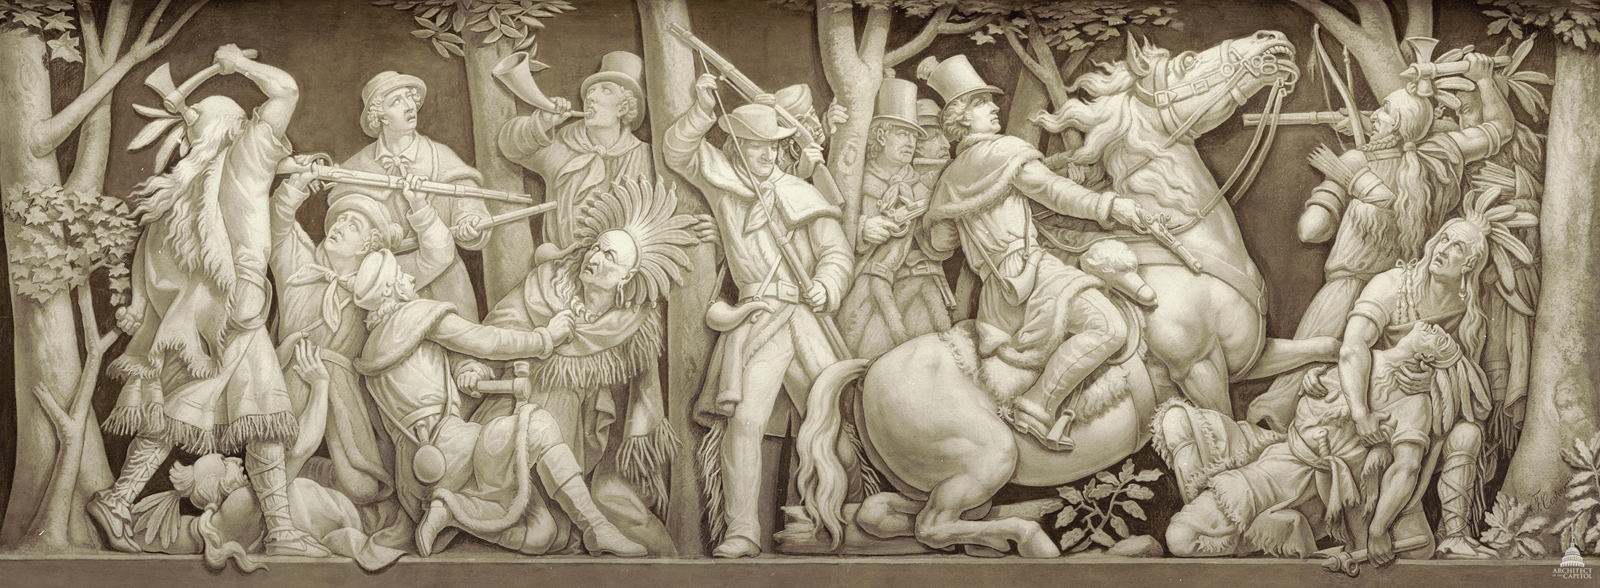 "Filippo Costaggini, ""Death of Tecumseh,"" c1877, located in the Rotunda of the U.S. Capitol"